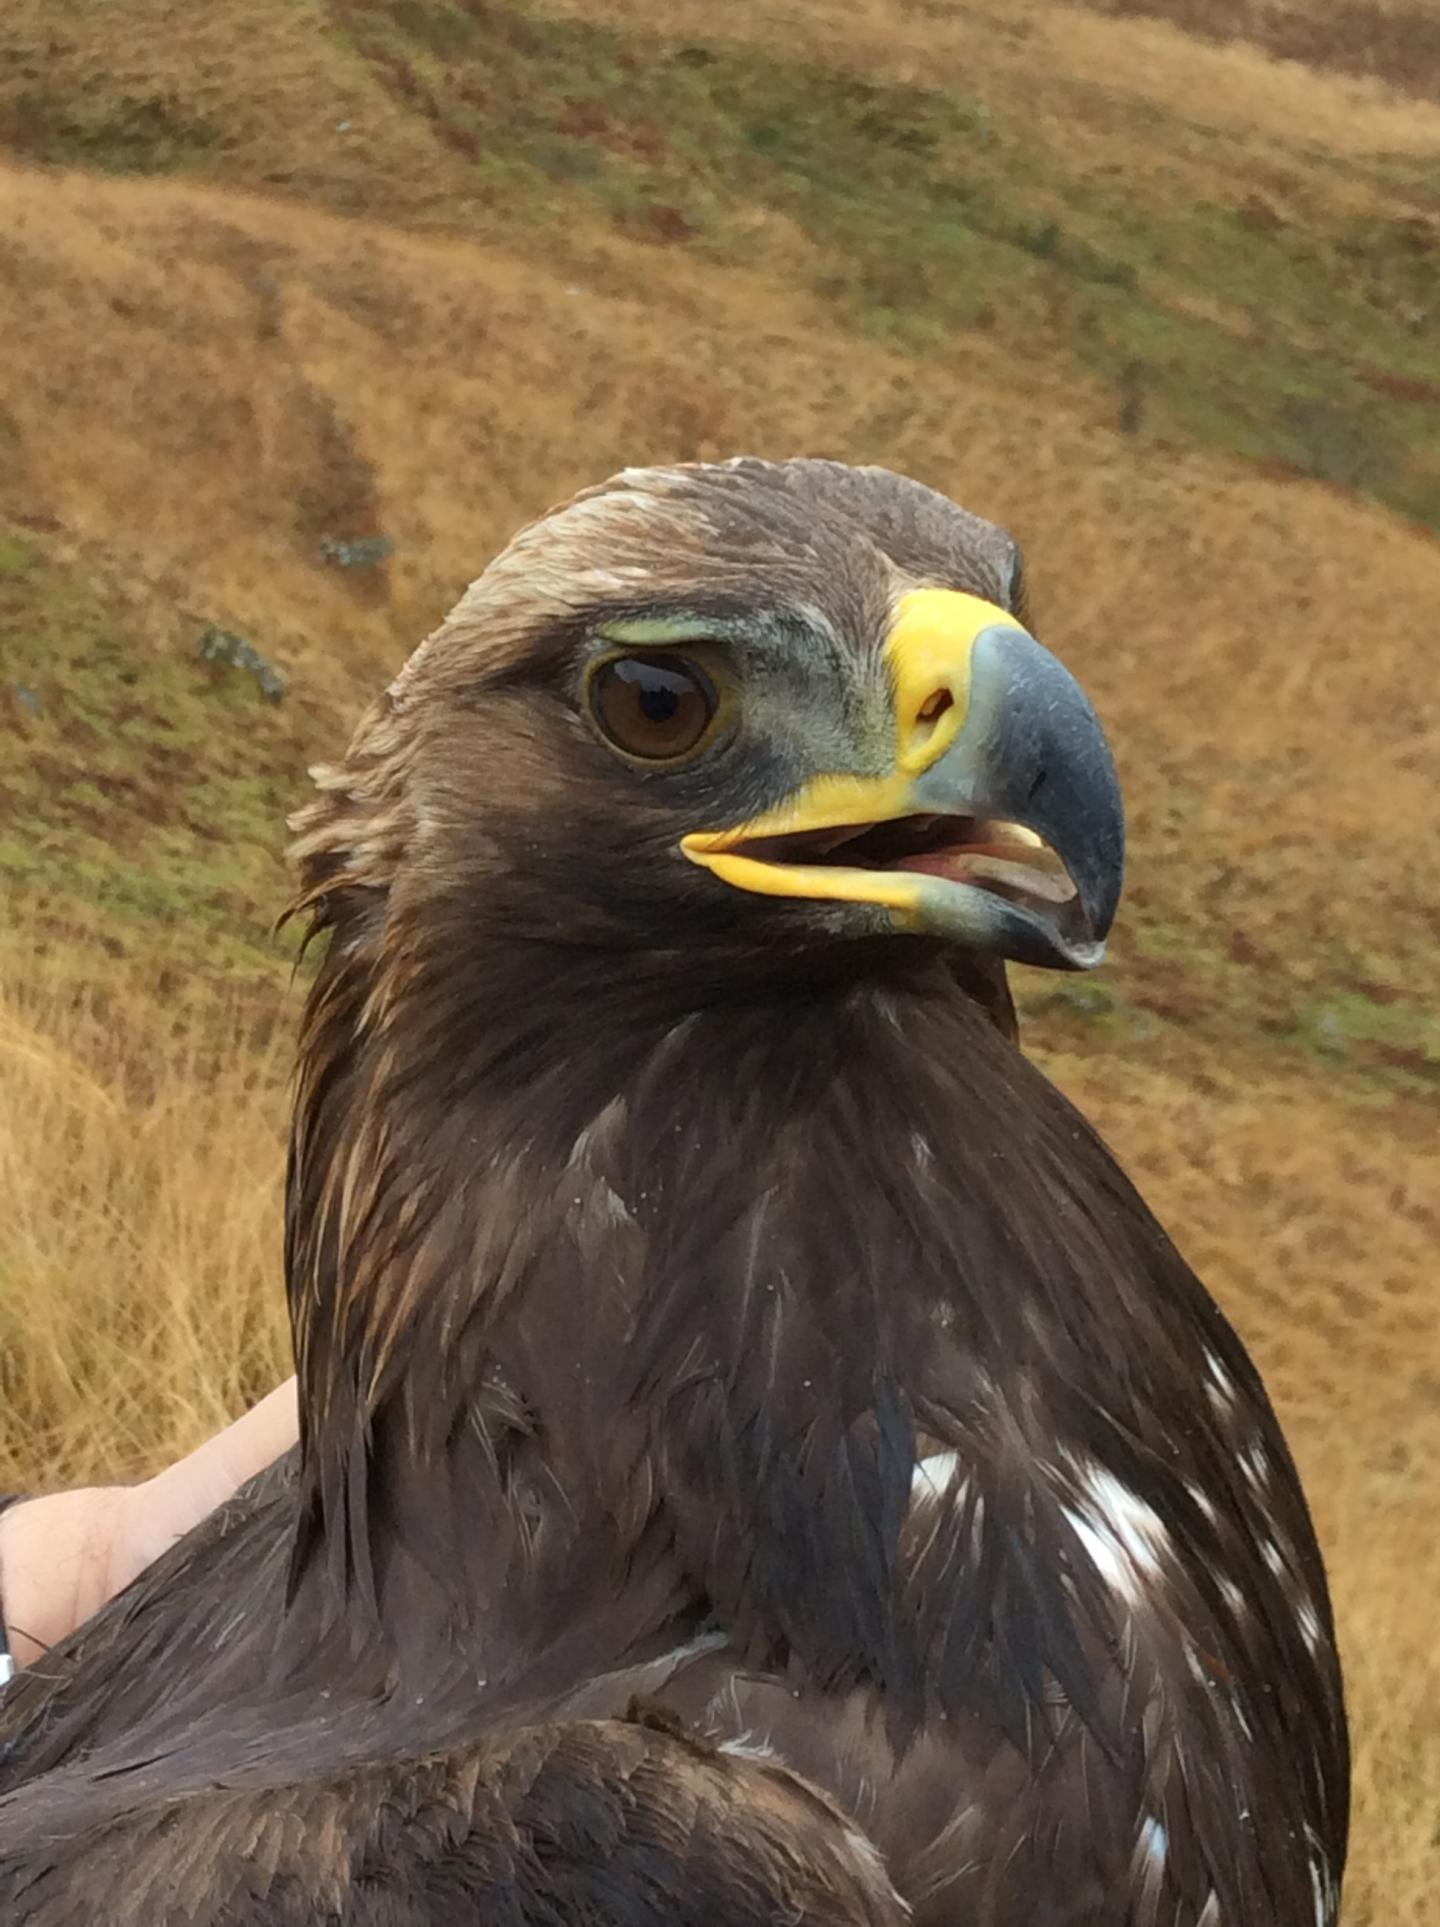 How do wind turbines impact Golden Eagles?